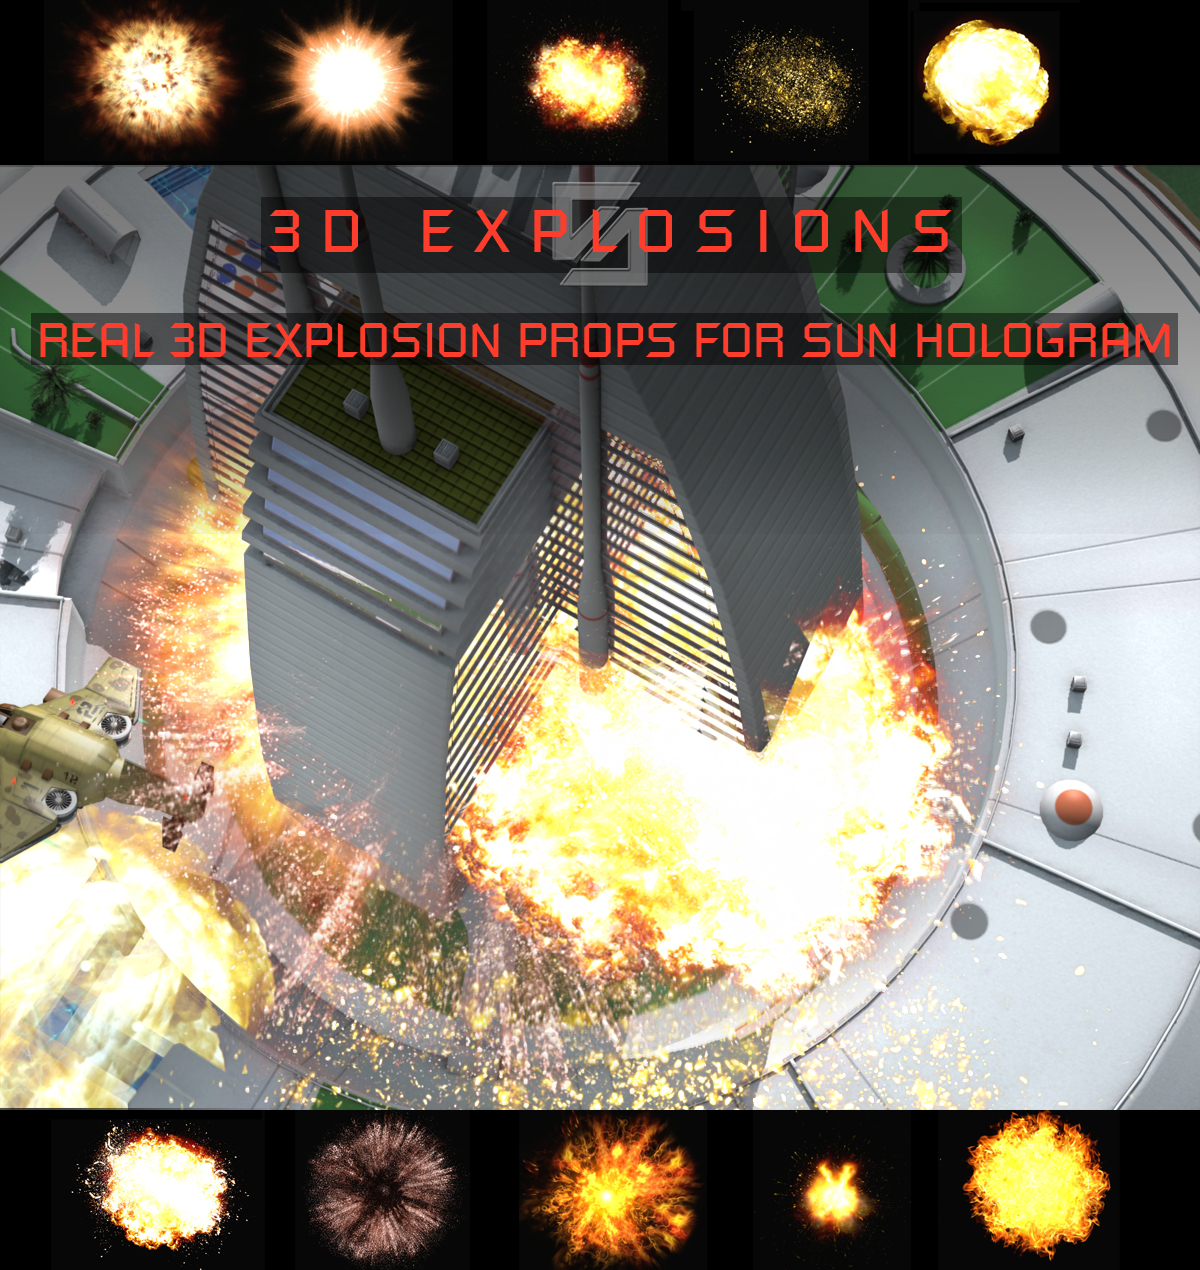 3D Explosions by shawnaloroc